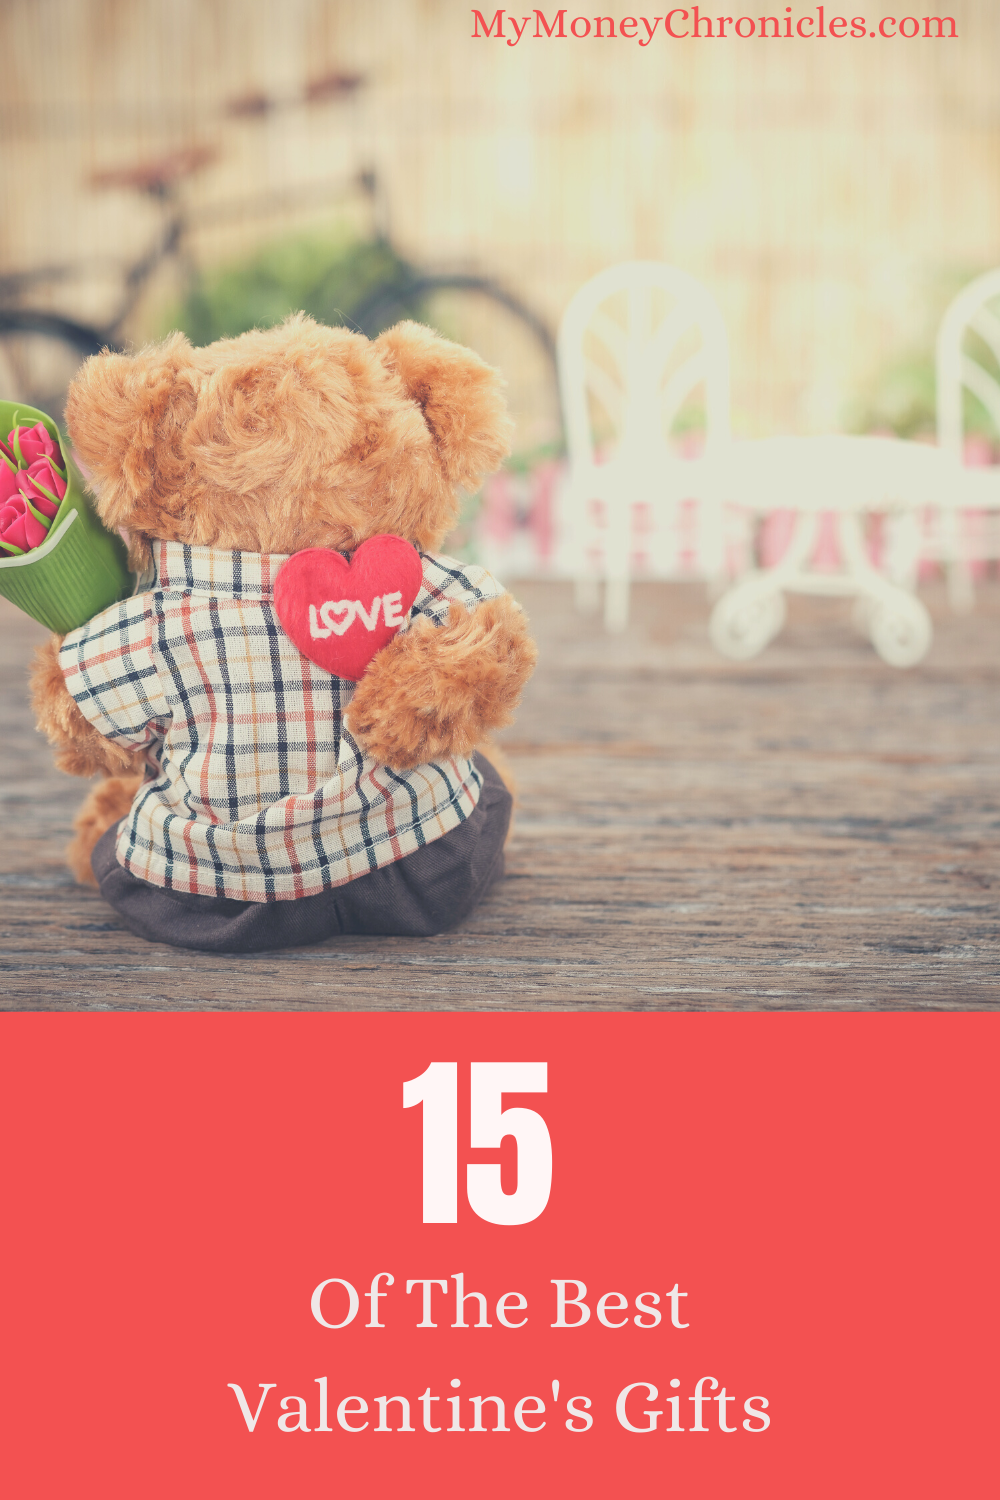 15 of the Best Valentine's Gifts